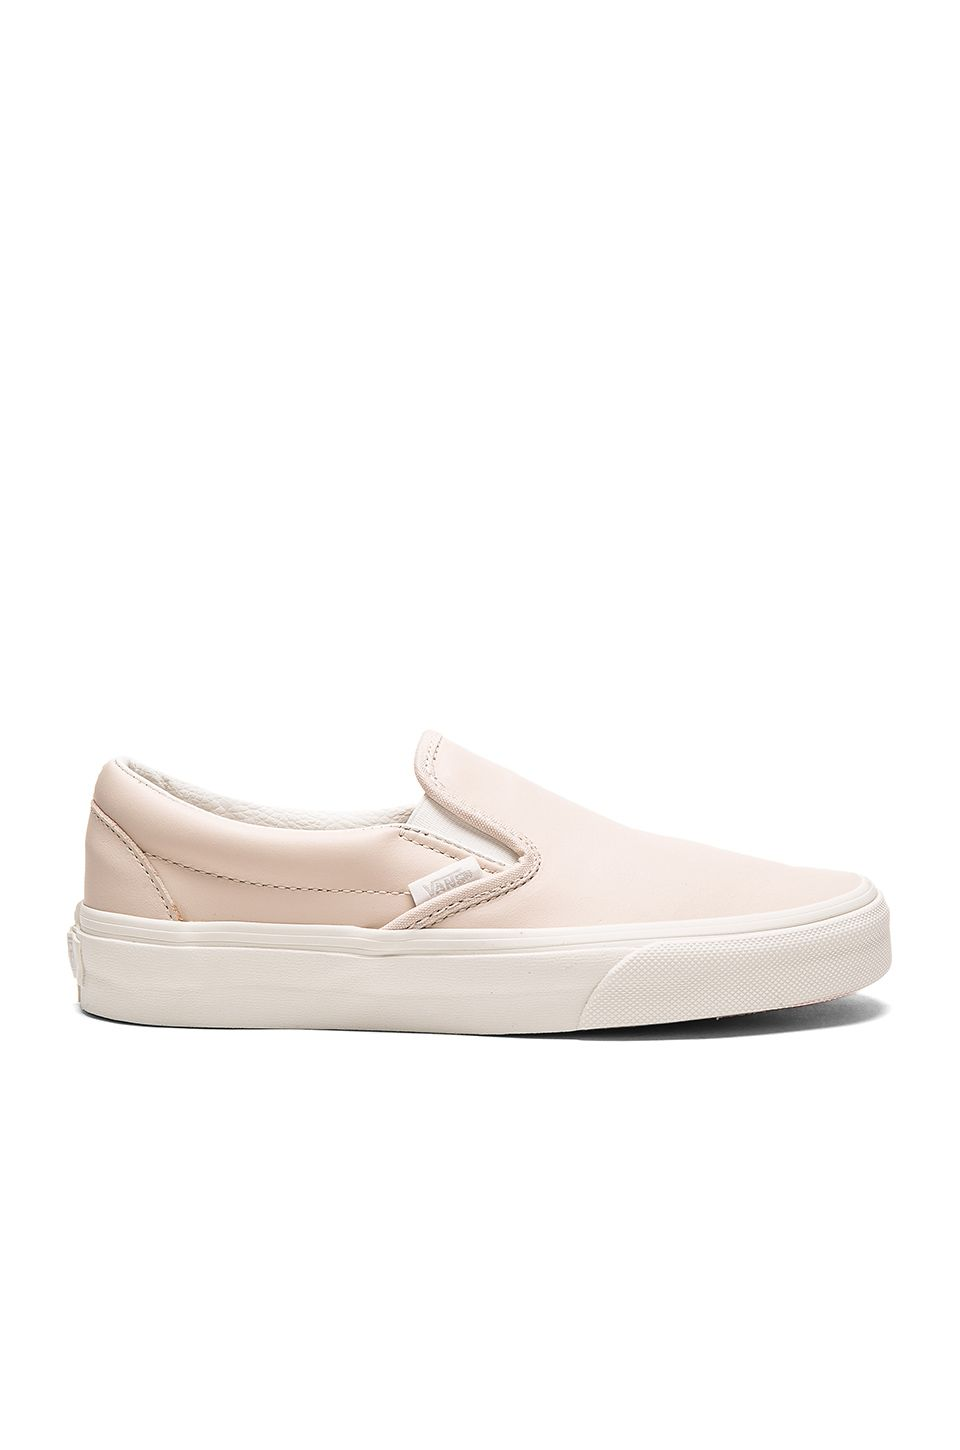 de89043803a Vans Leather Classic Slip-On in Whispering Pink   Blanc de Blanc ...